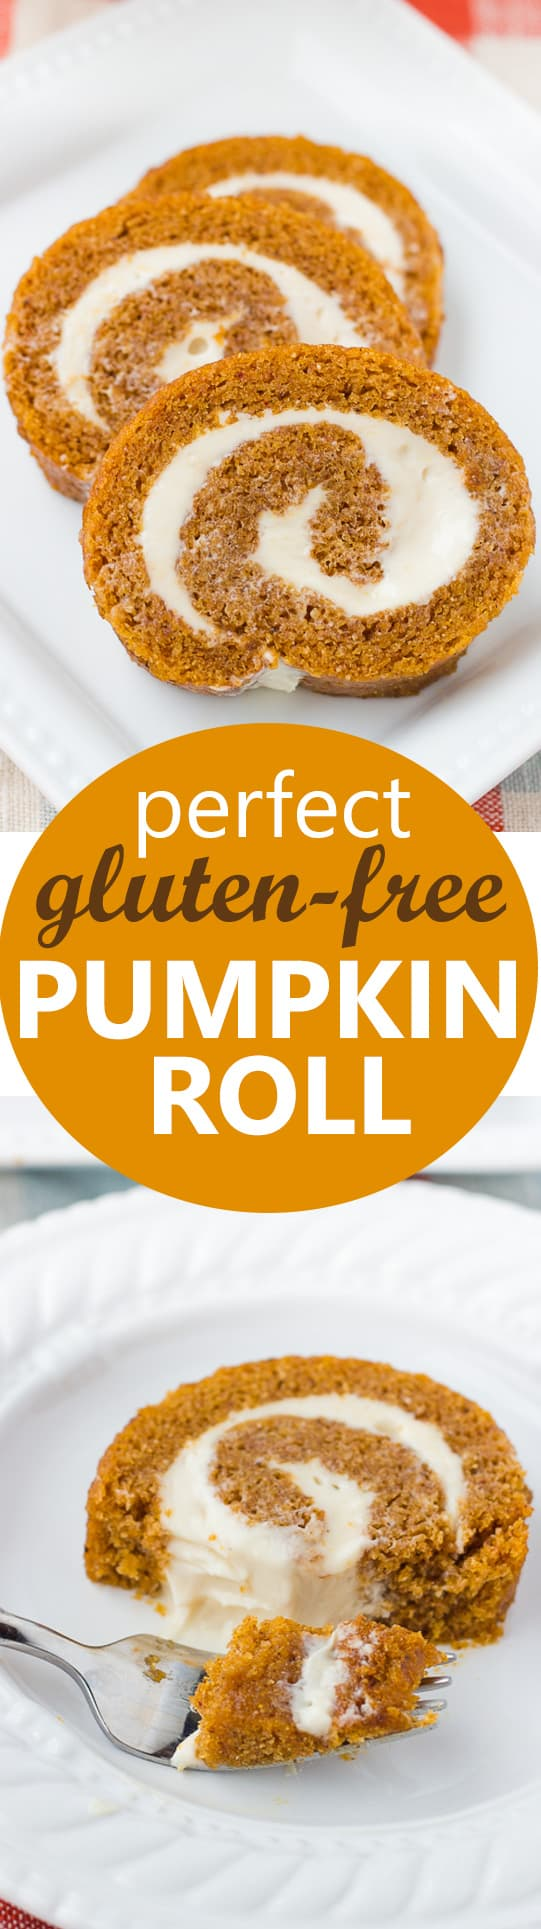 Perfect Gluten-Free Pumpkin Roll! Moist spiced cake with a cream cheese filling. Easily made dairy-free!